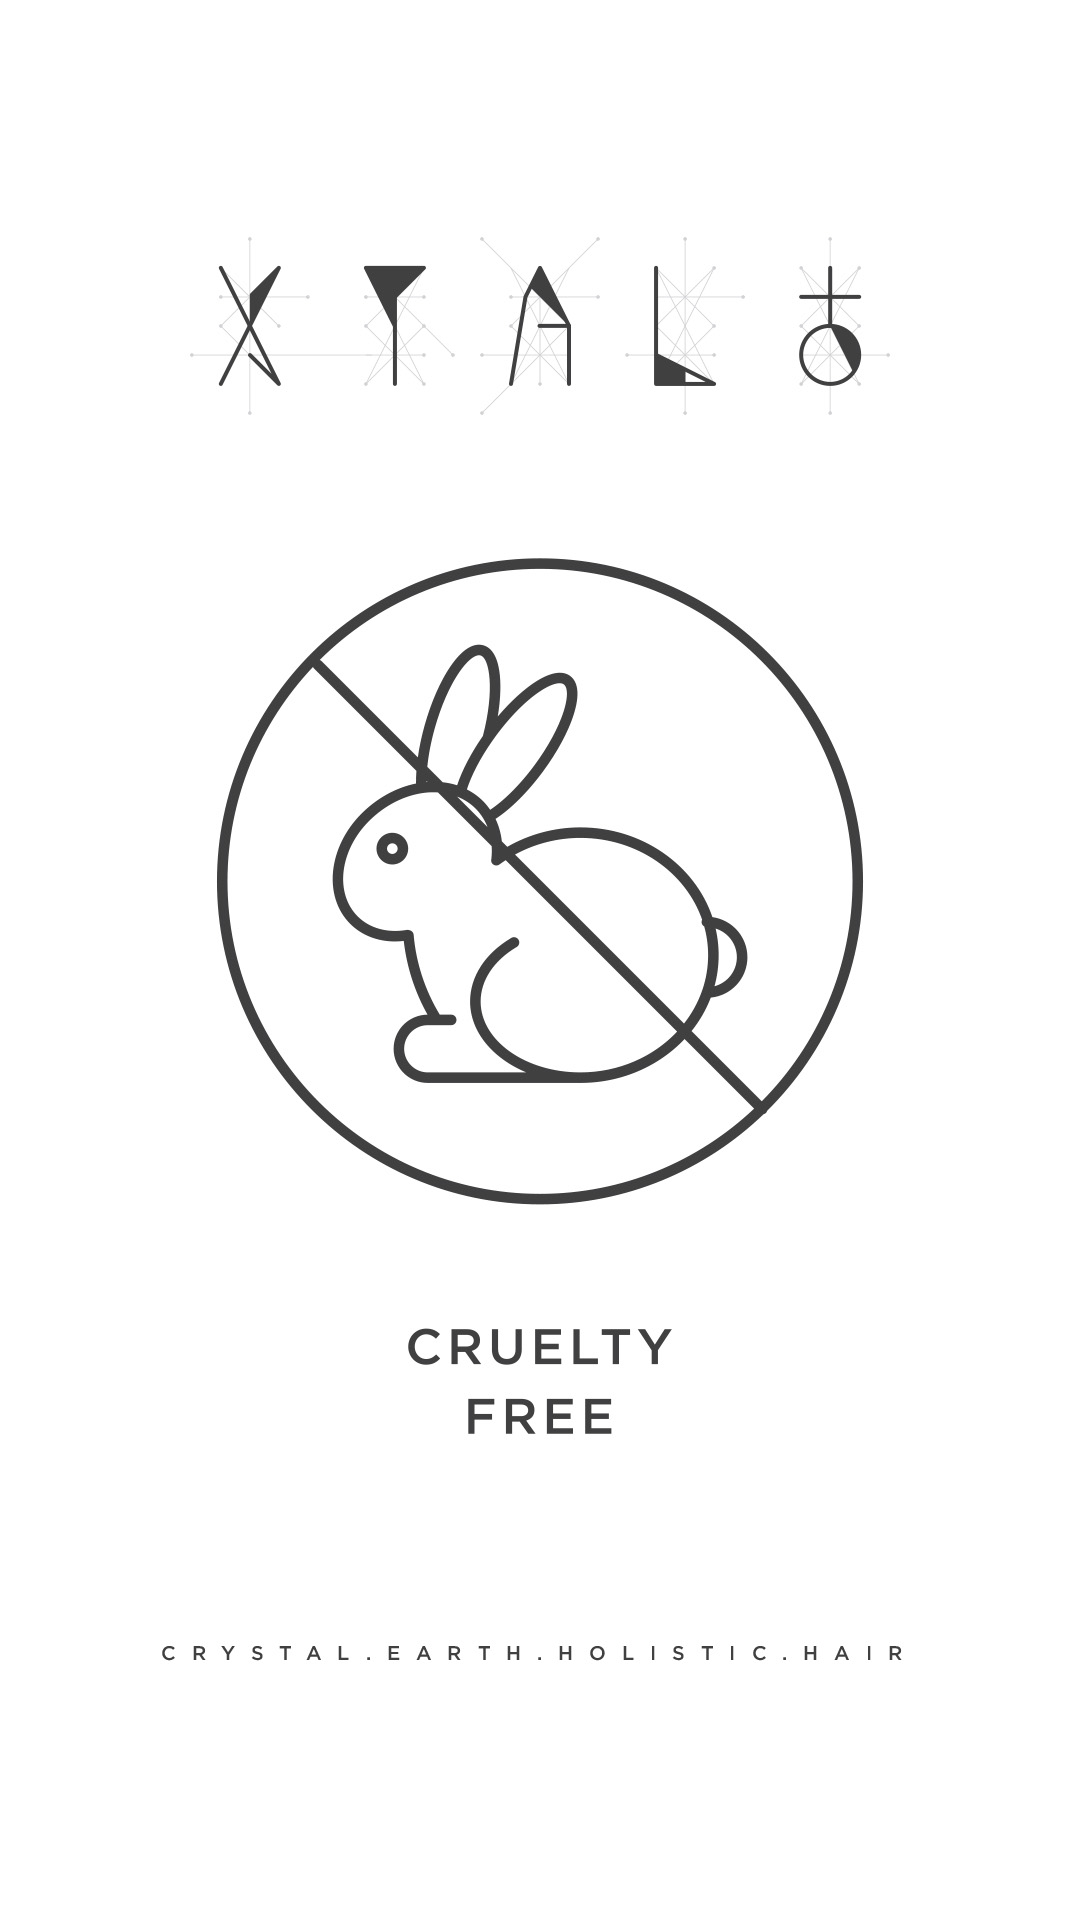 What's the difference between vegan + cruelty-free?